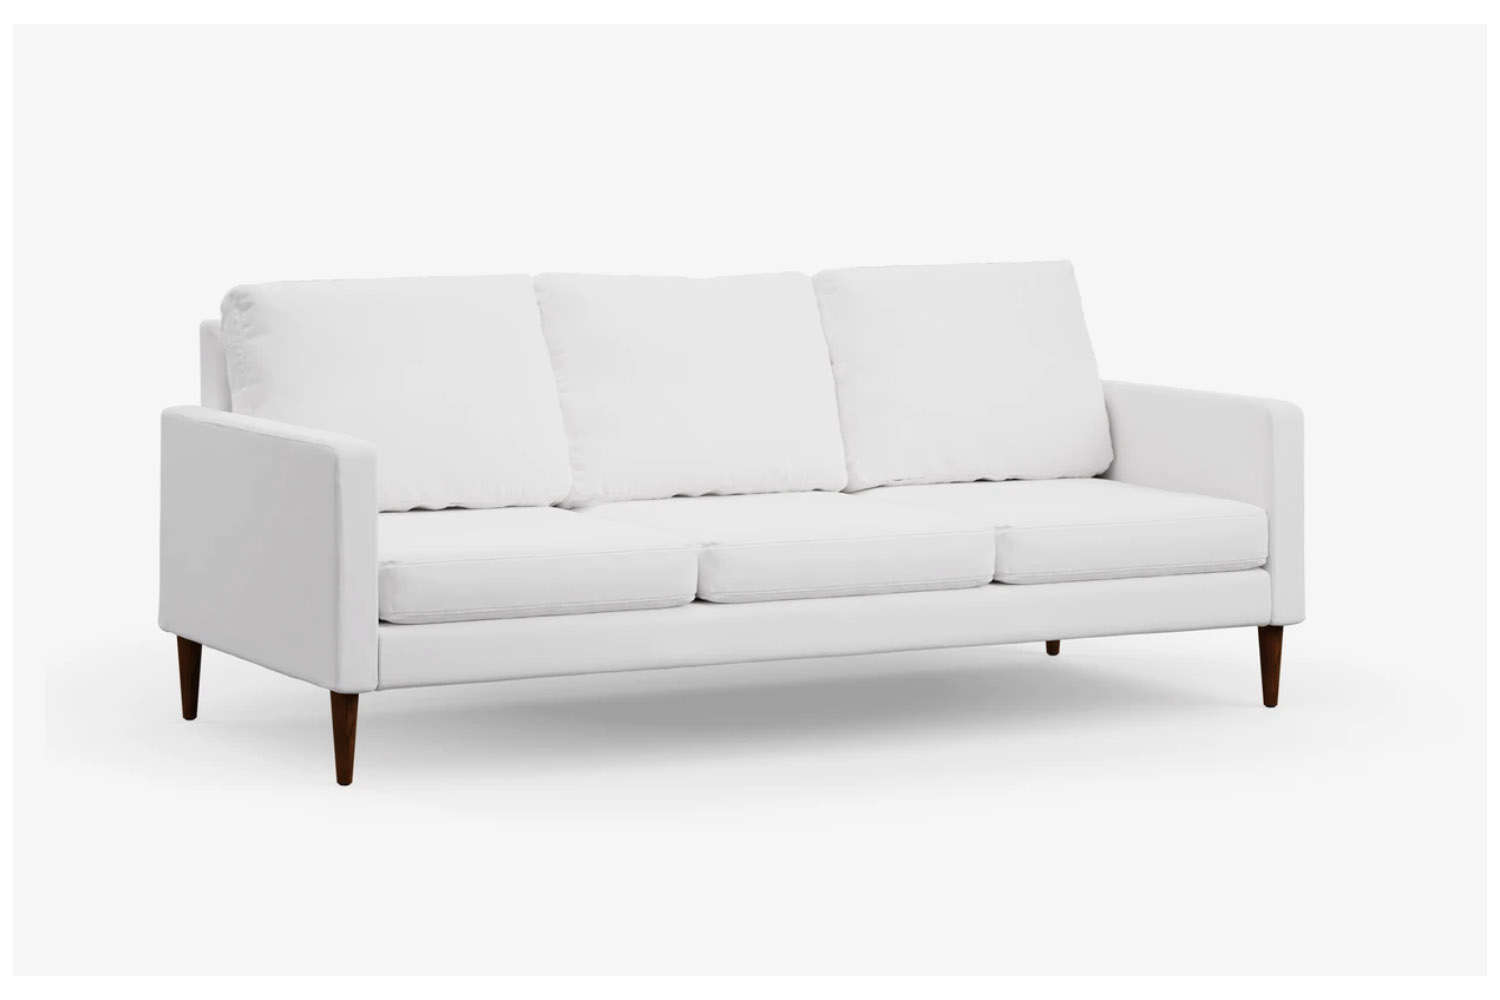 The Campaign Sofa shown in Pearl White Flat Weave upholstery is $loading=